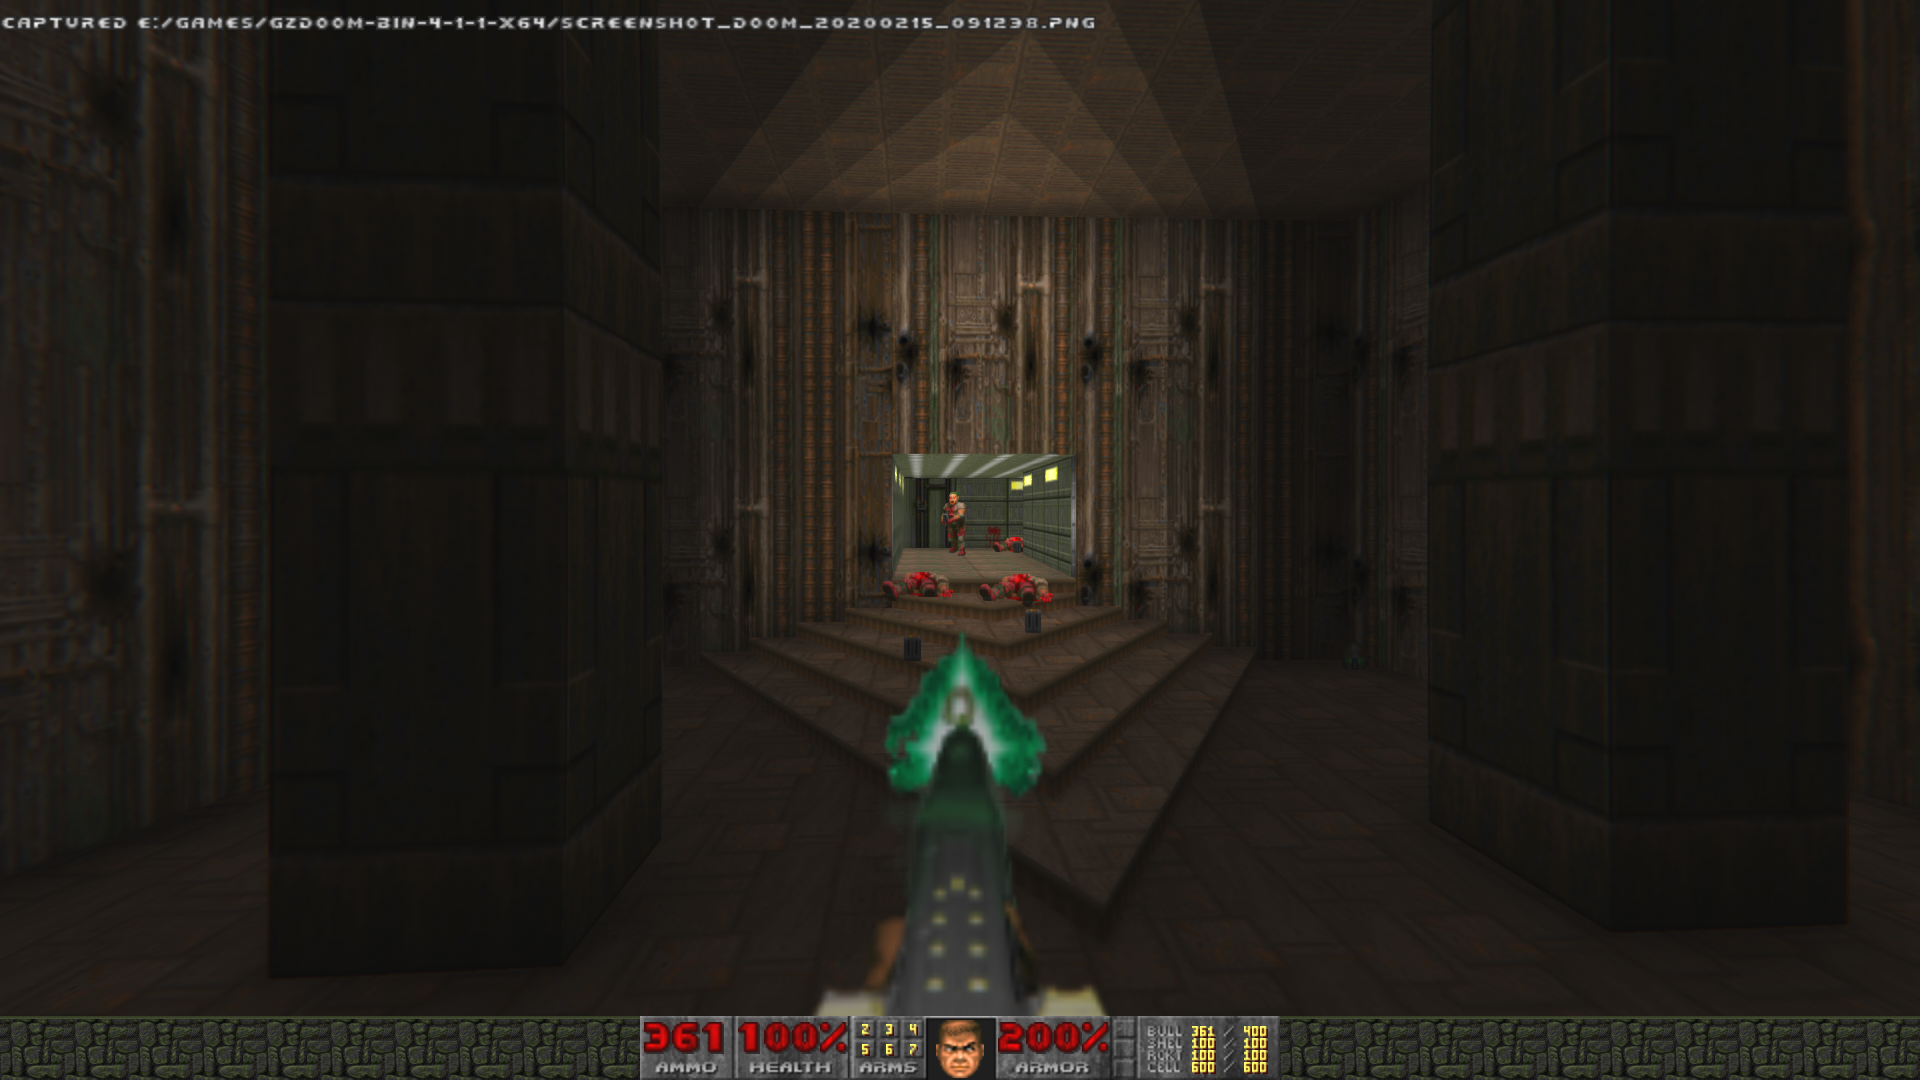 Screenshot_Doom_20200215_091239.png.859557271be004bd336852206a0e0dac.png